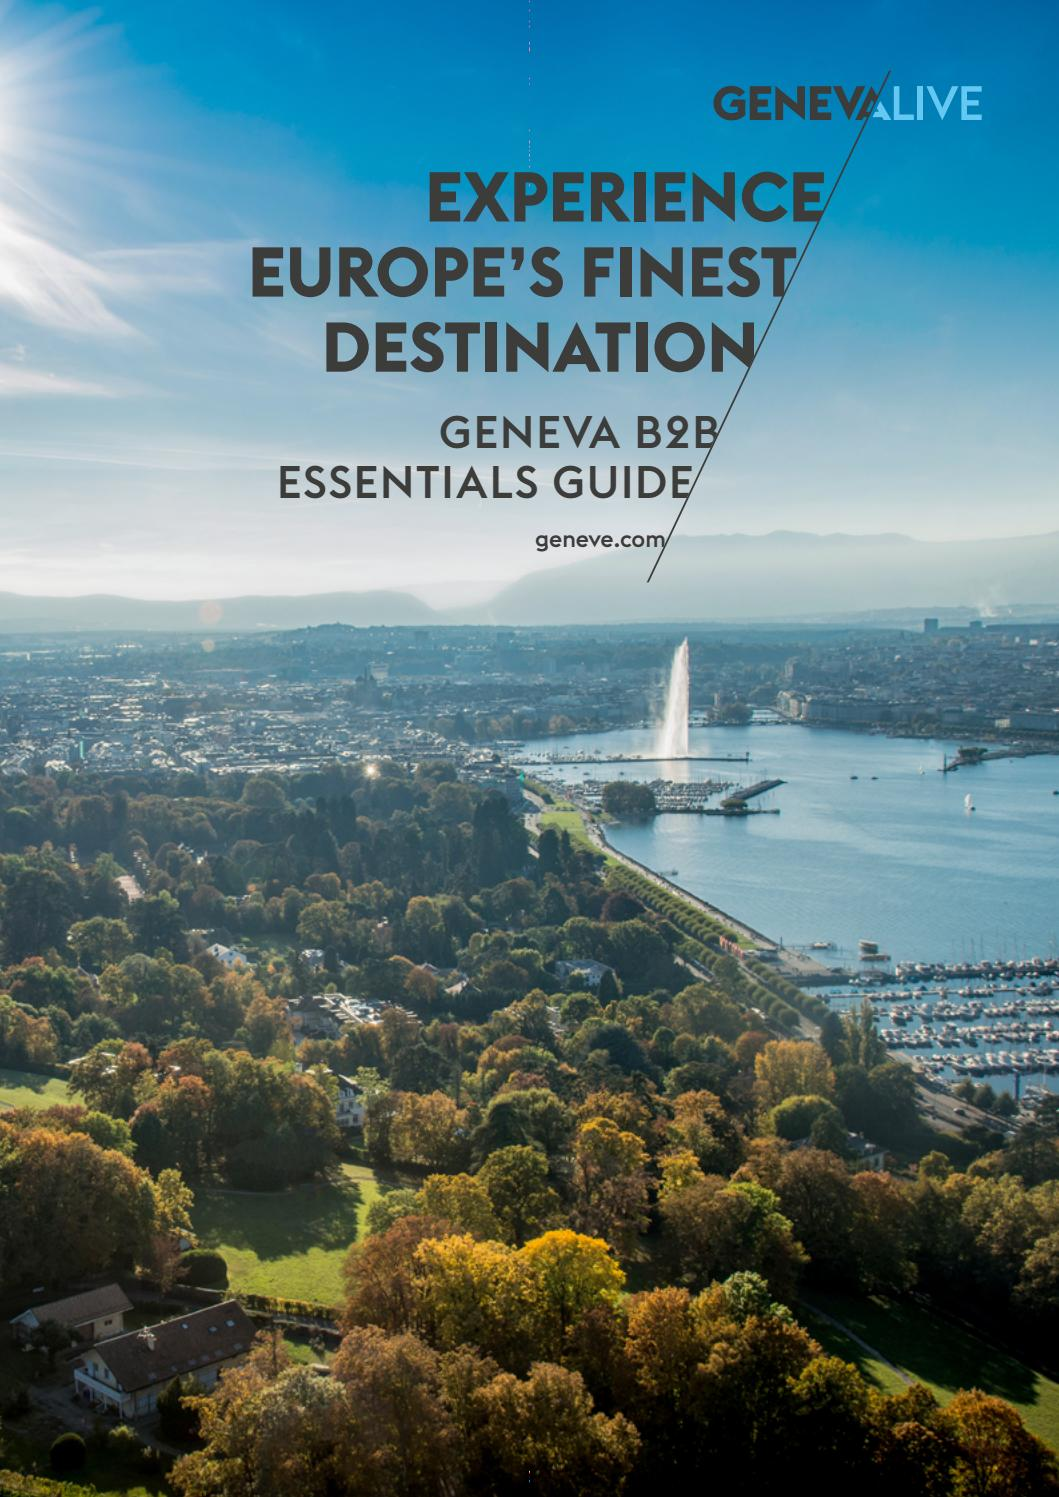 "Salon De Jardin Arrondi Luxe Geneva the B2b Essentials Guide ""imagine Geneva"" 2019 Of 37 Nouveau Salon De Jardin Arrondi"